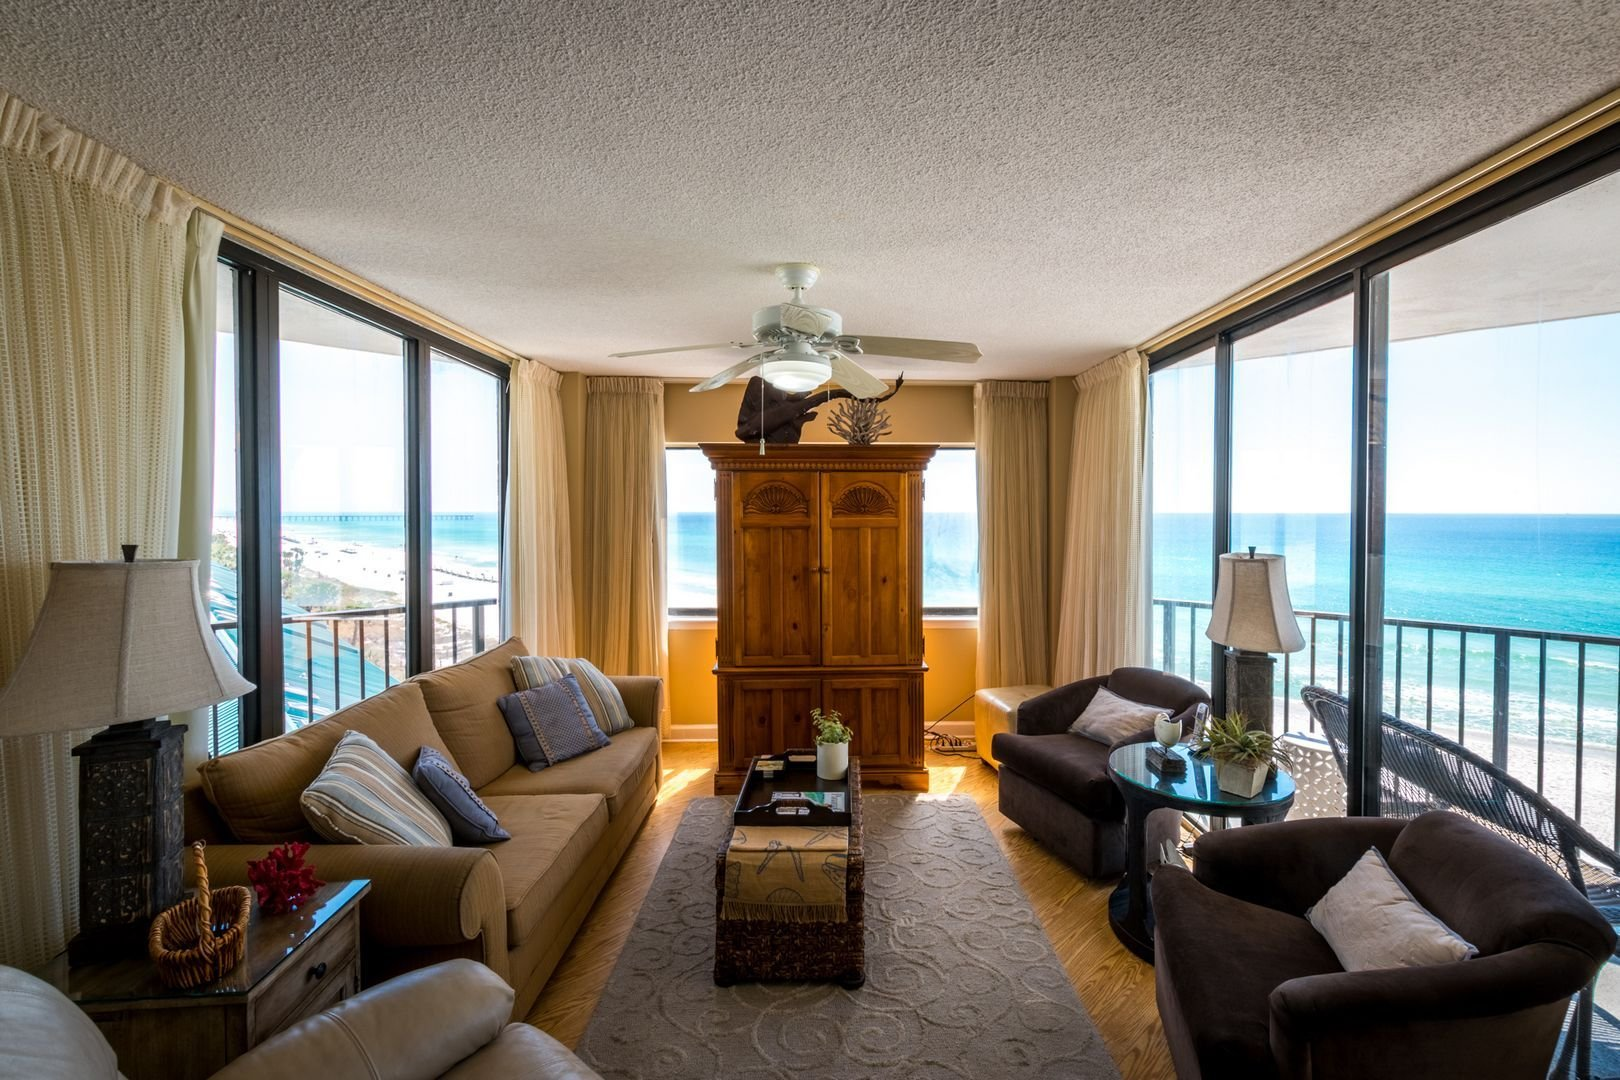 Best Aqua Vista E606 Panama City Beach 3 Bedroom 2 Full With Pictures